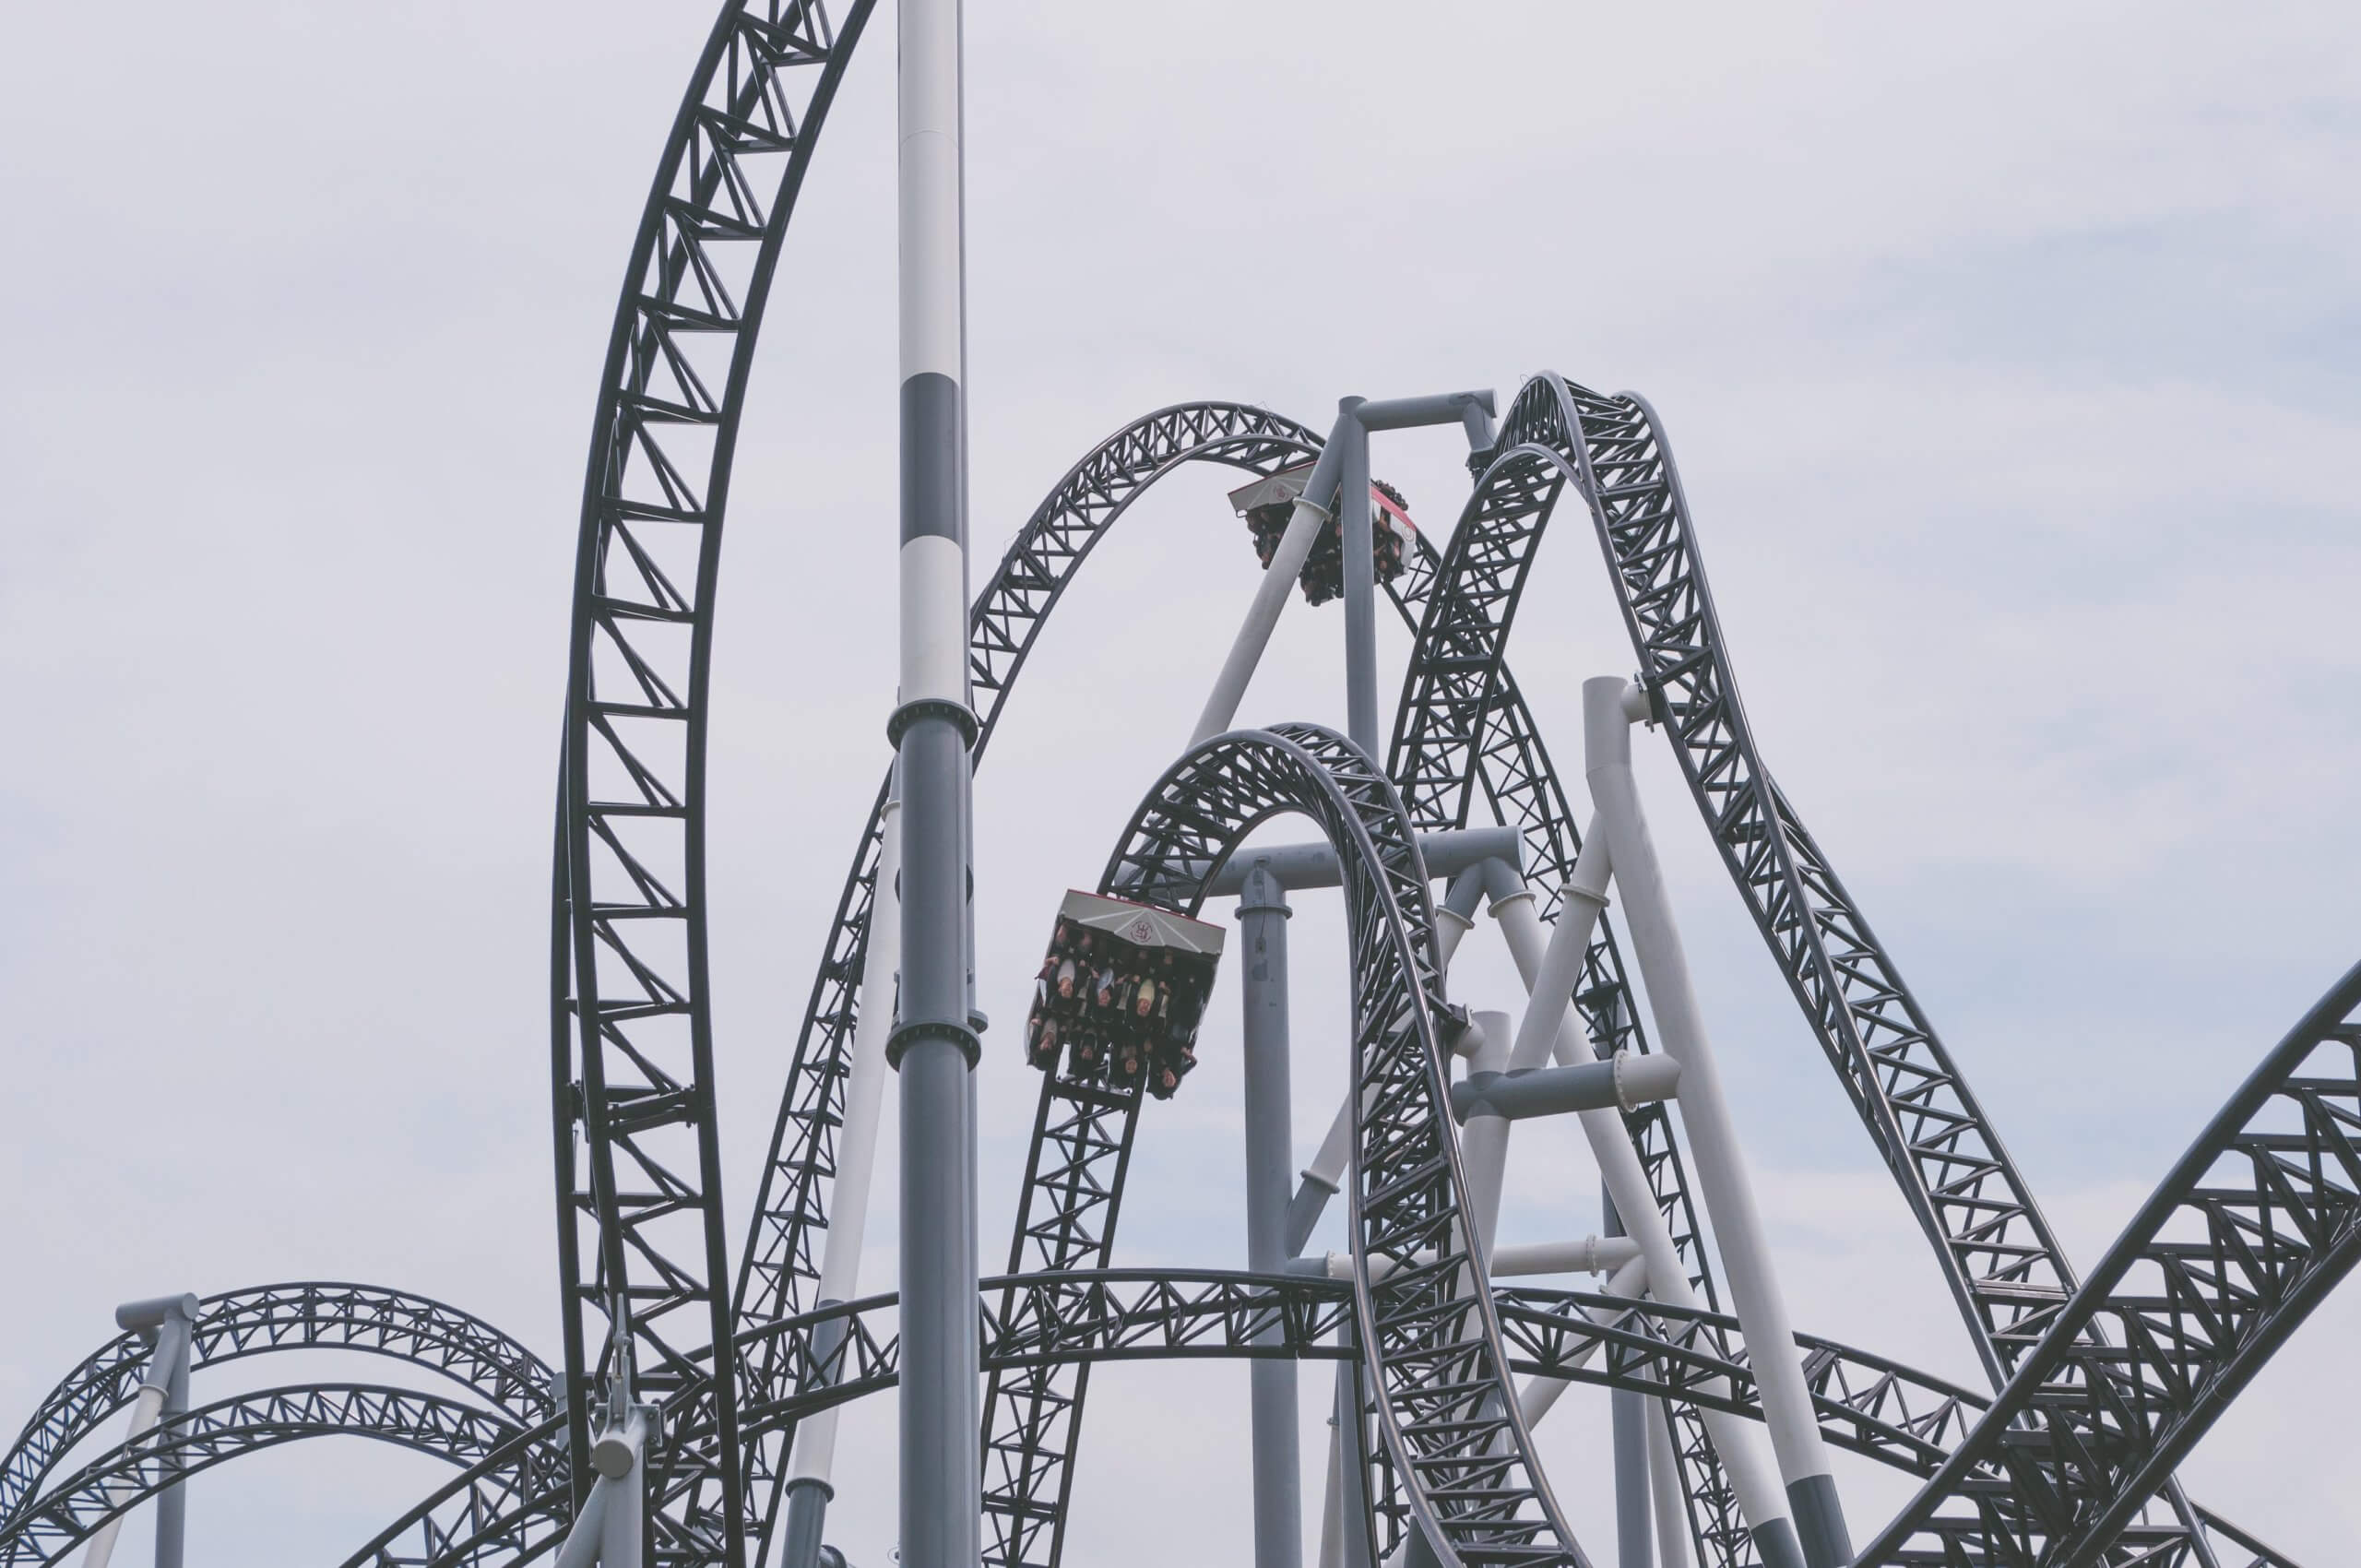 An image of a roller coaster which represented the twists and turns my professional life has experienced with this virus.